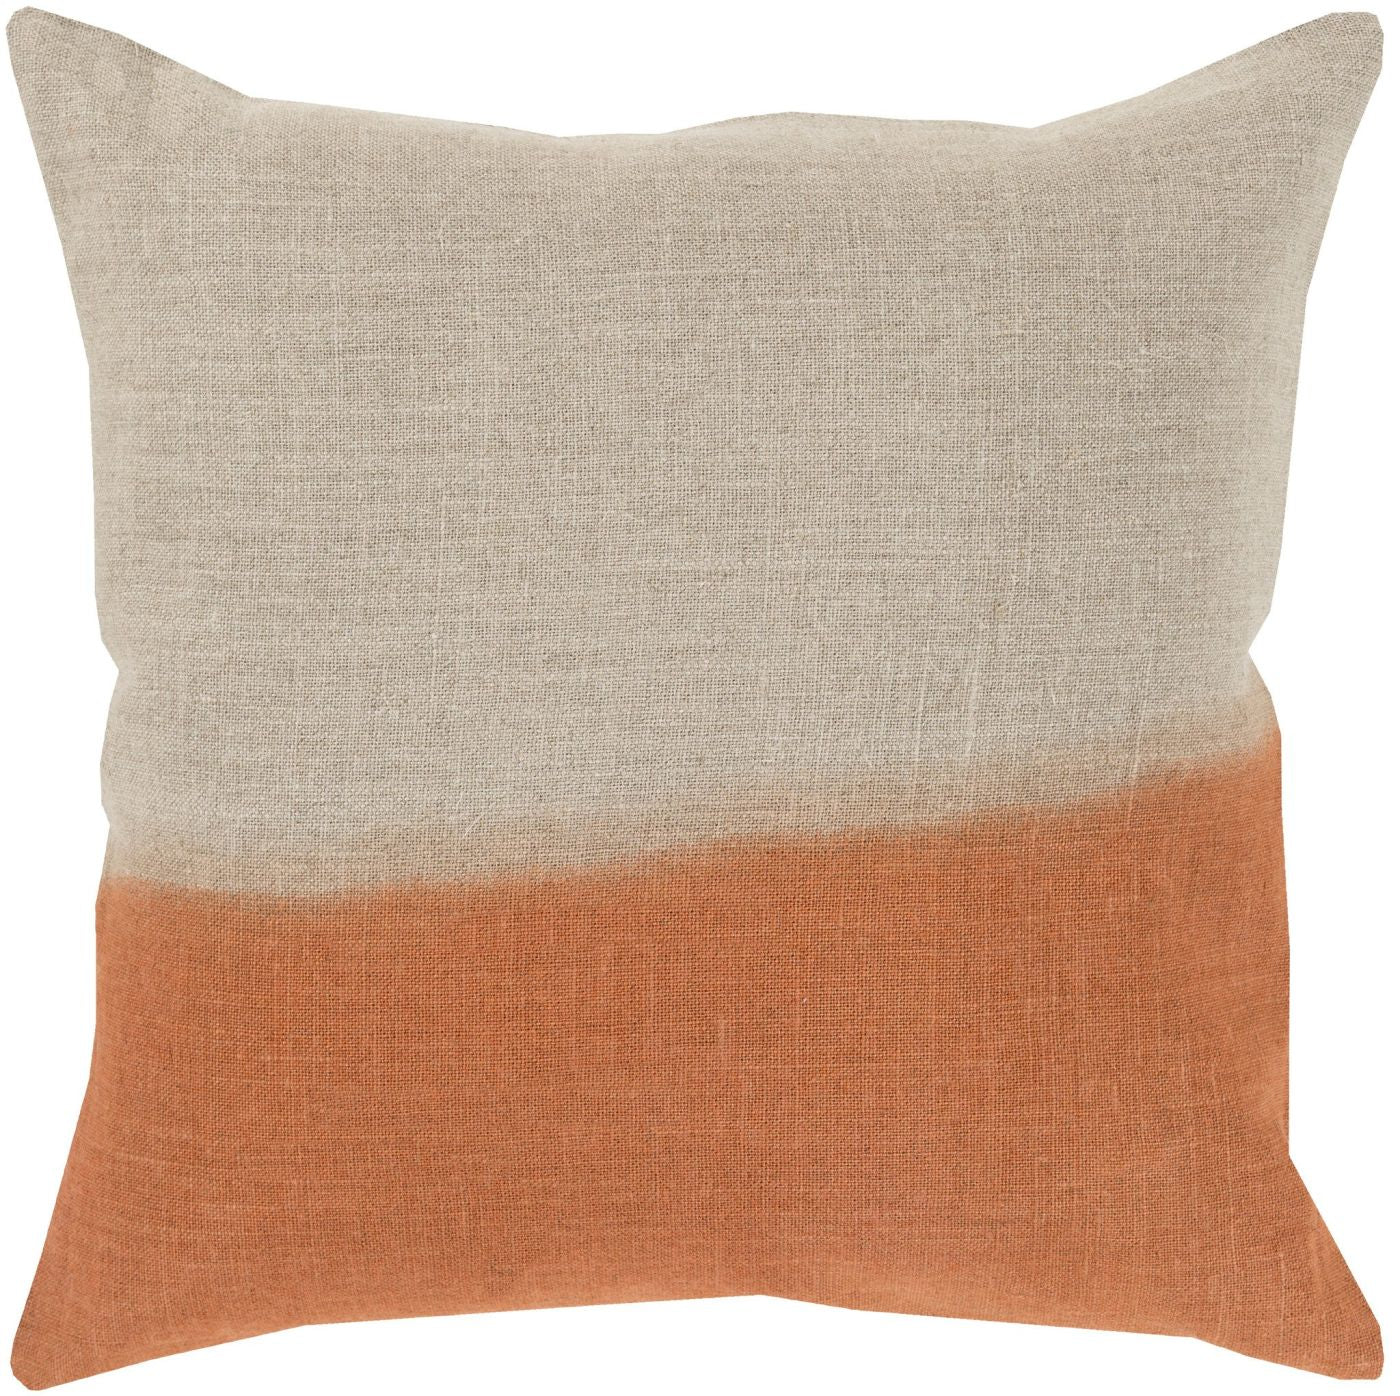 Cute Neutral Throw Pillows : Surya Dip Dyed Throw Pillow Neutral, Orange DD012-2020P. Only $69.60 at Contemporary Furniture ...